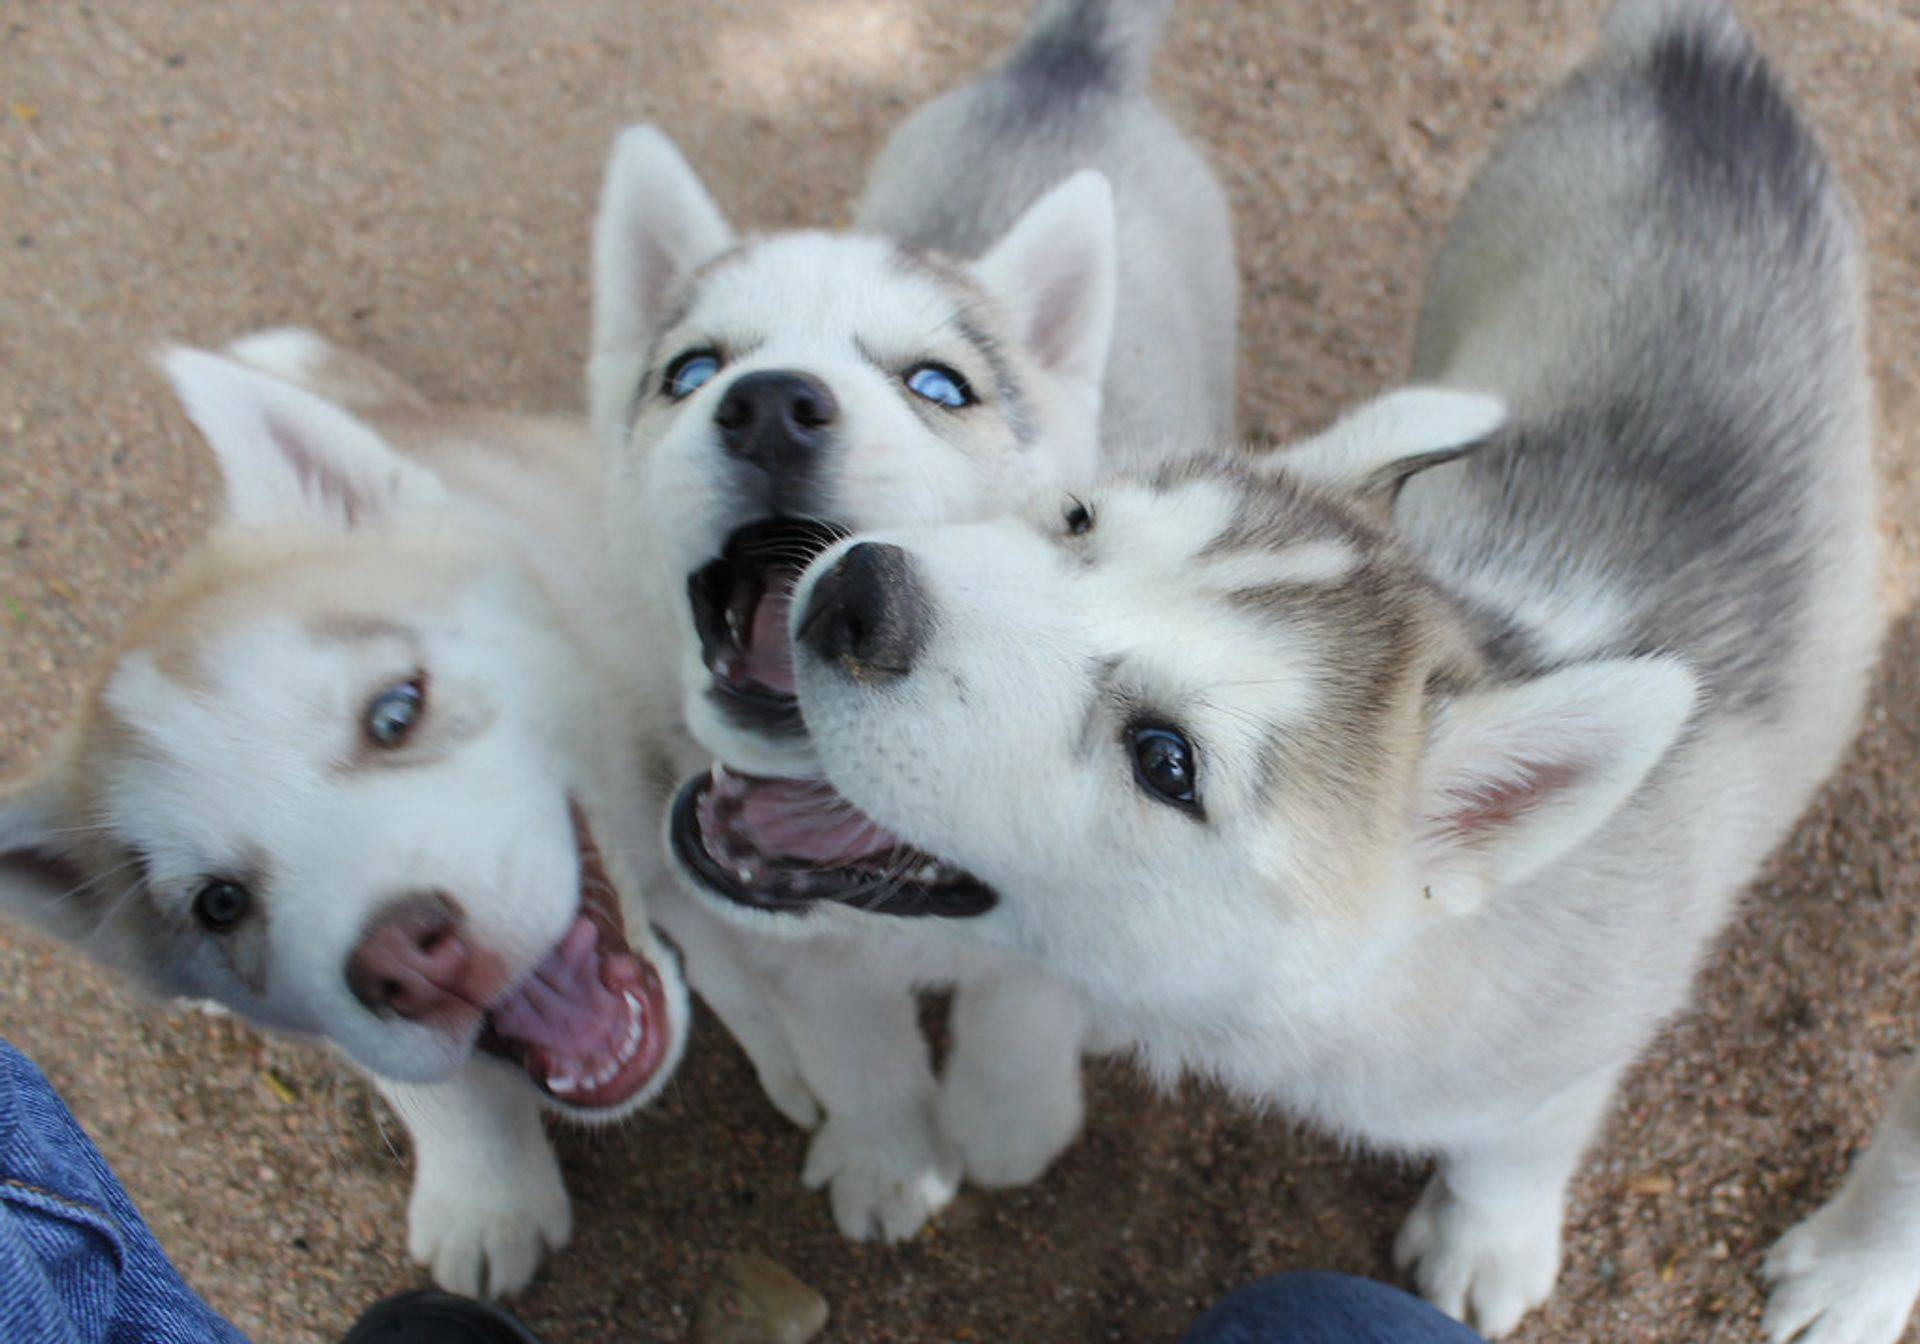 Husky puppies play time